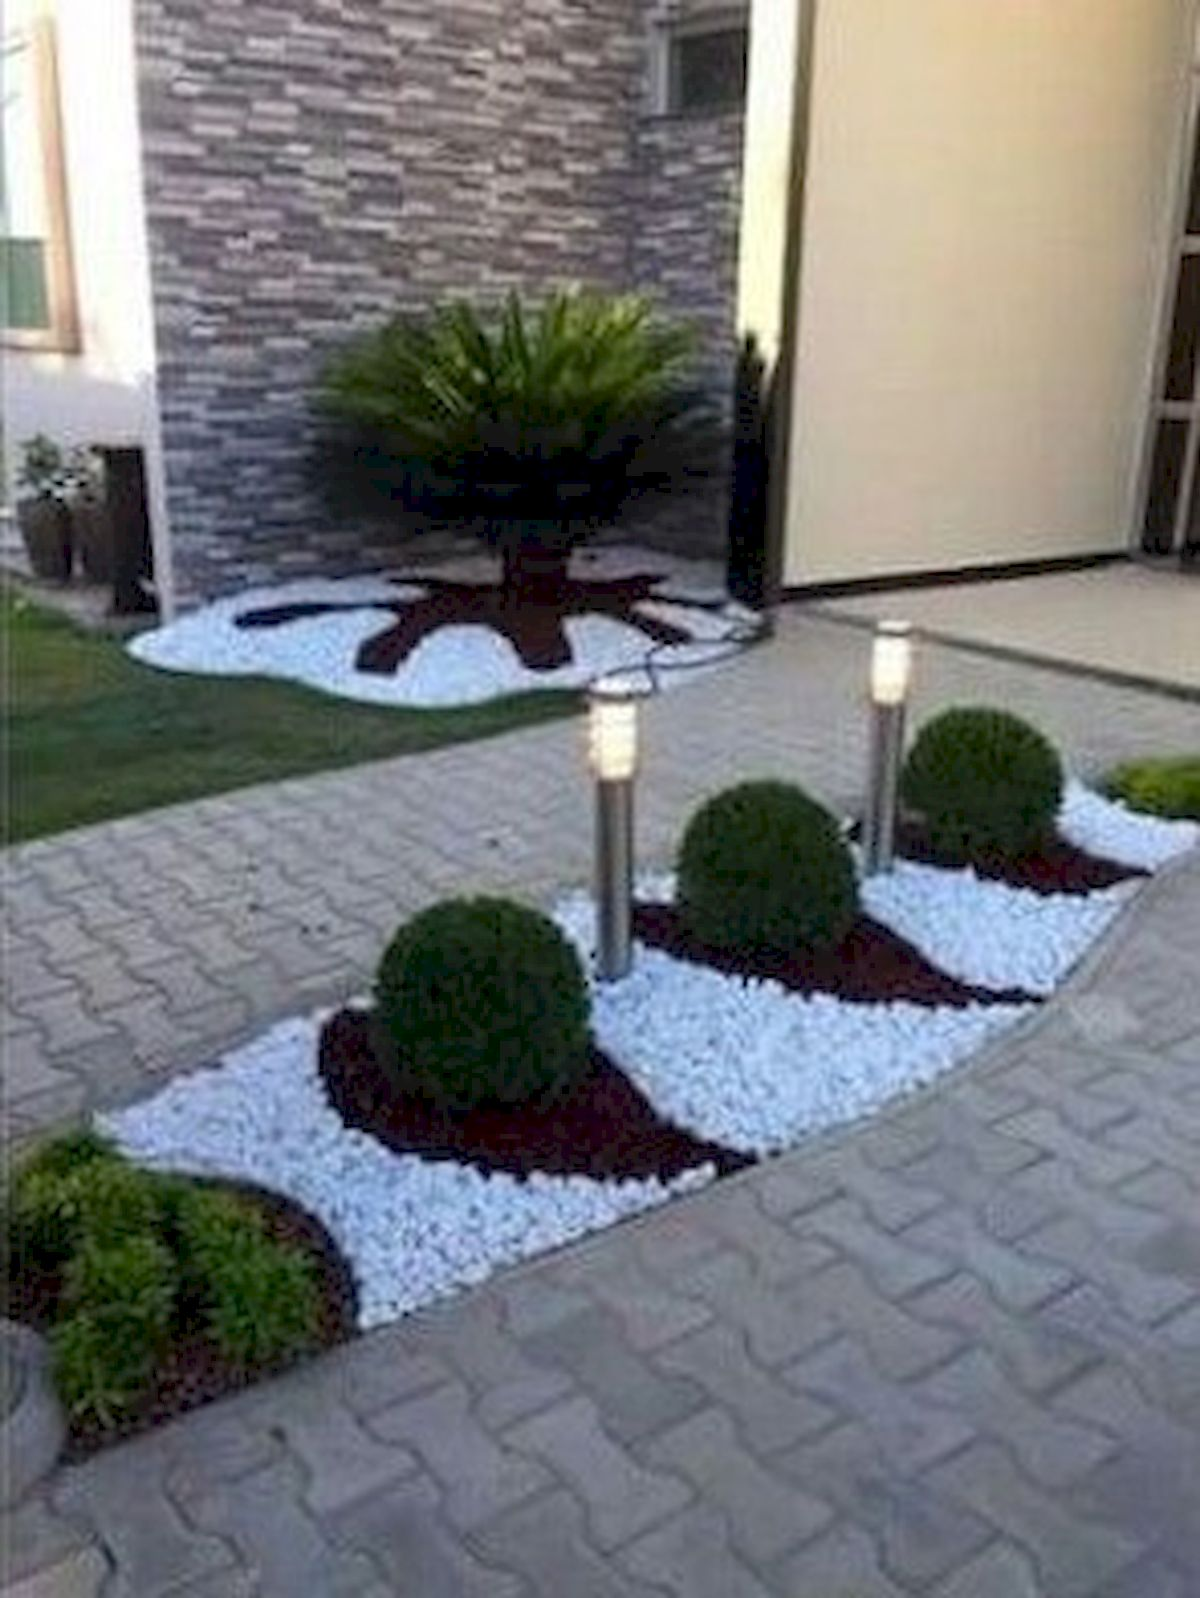 71 Beautiful Gravel Garden Design Ideas For Side Yard And ... on Patio And Gravel Garden Ideas id=41671